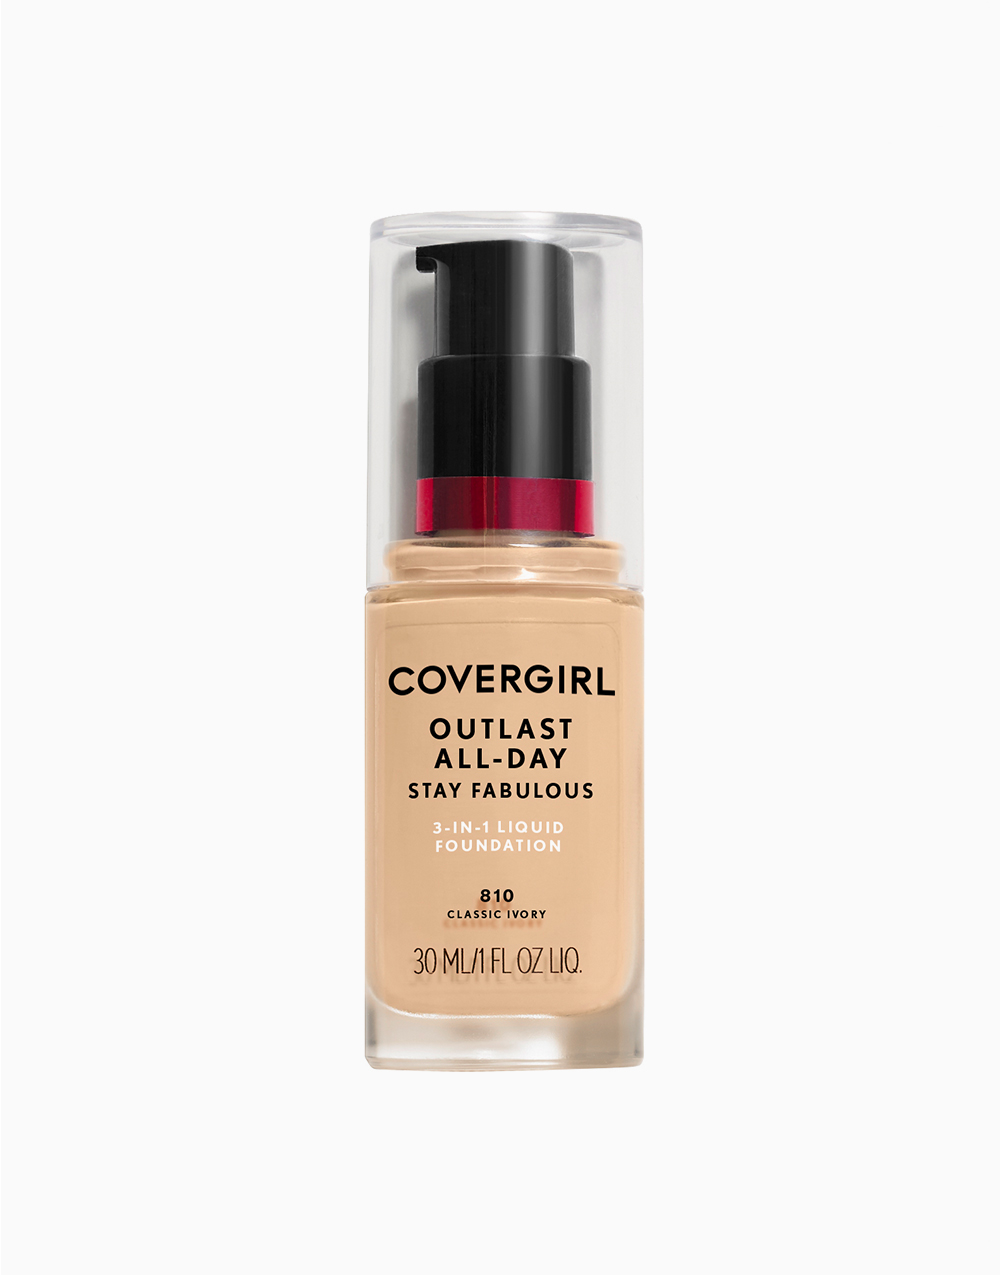 Outlast Stay Fabulous 3-in-1 Foundation by CoverGirl   Classic Ivory